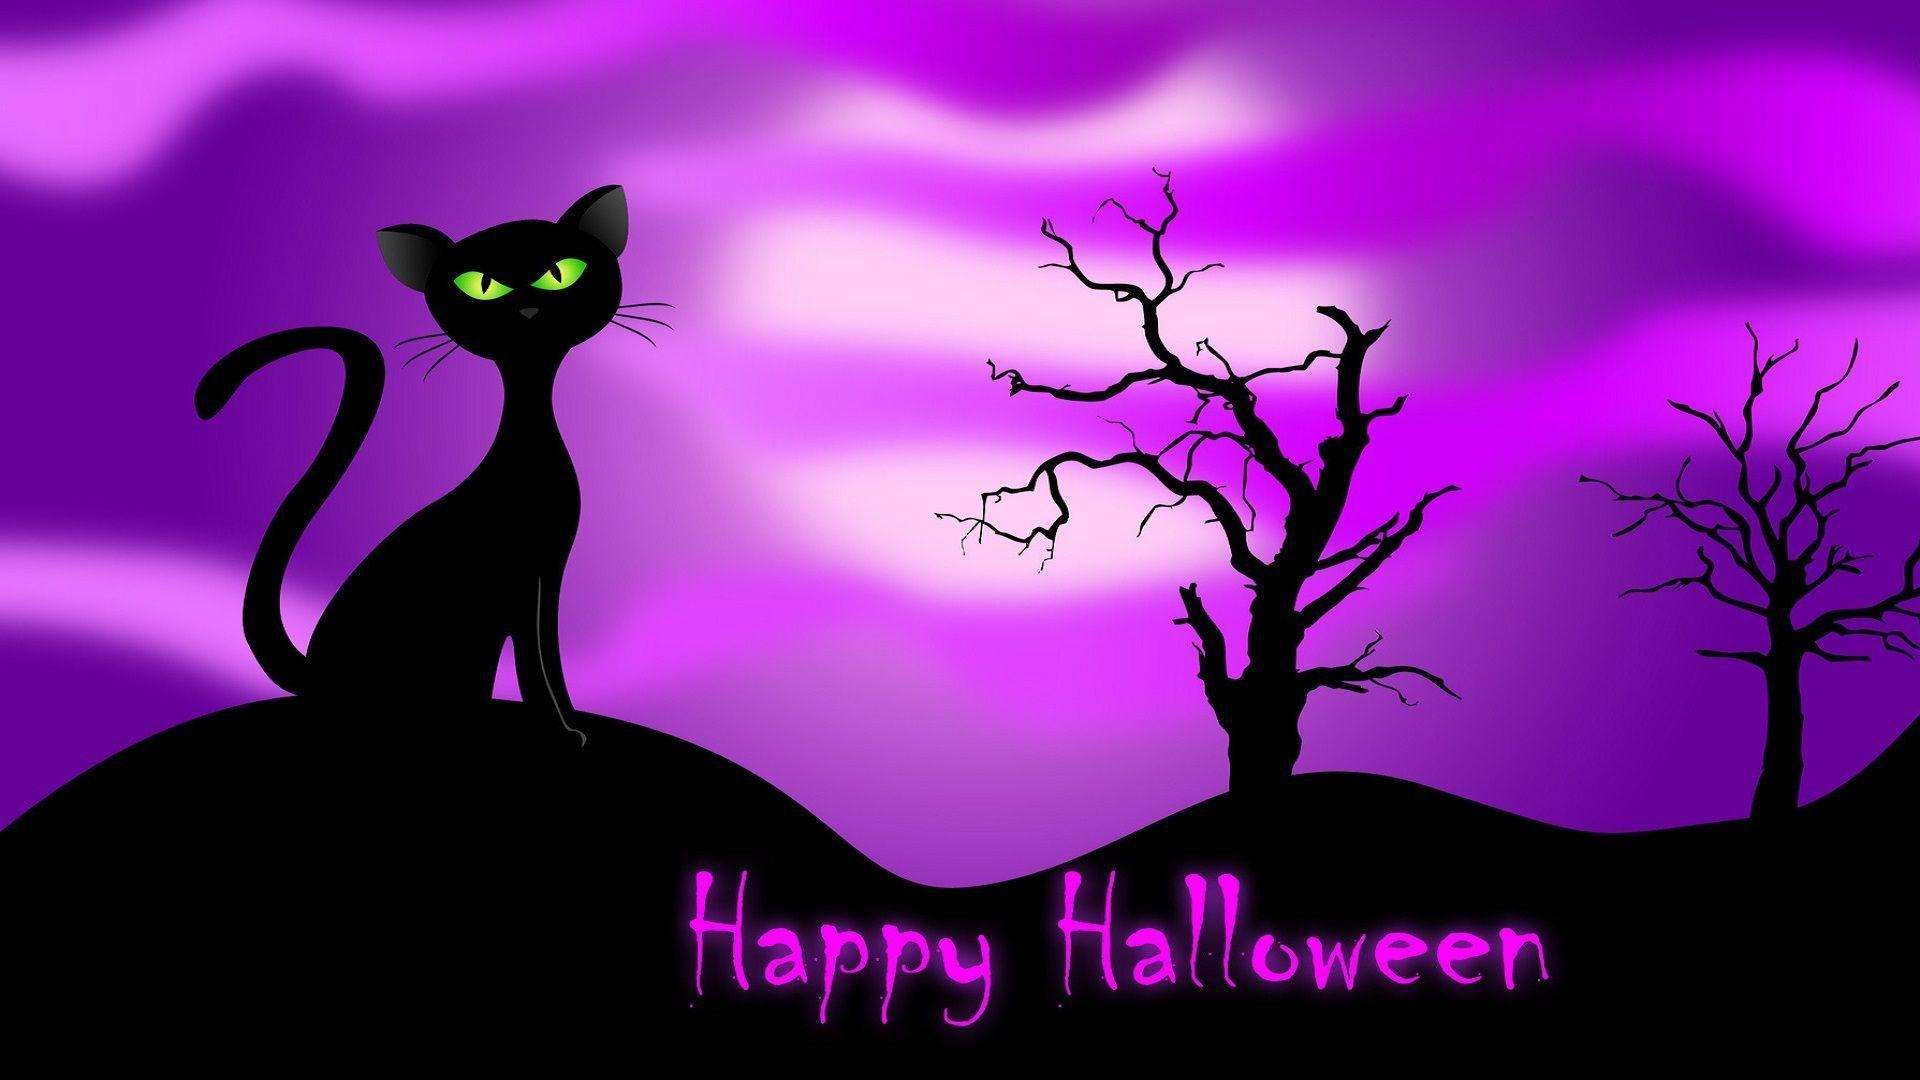 Happy Halloween Cat Desktop Background | Desktop Backgrounds HQ